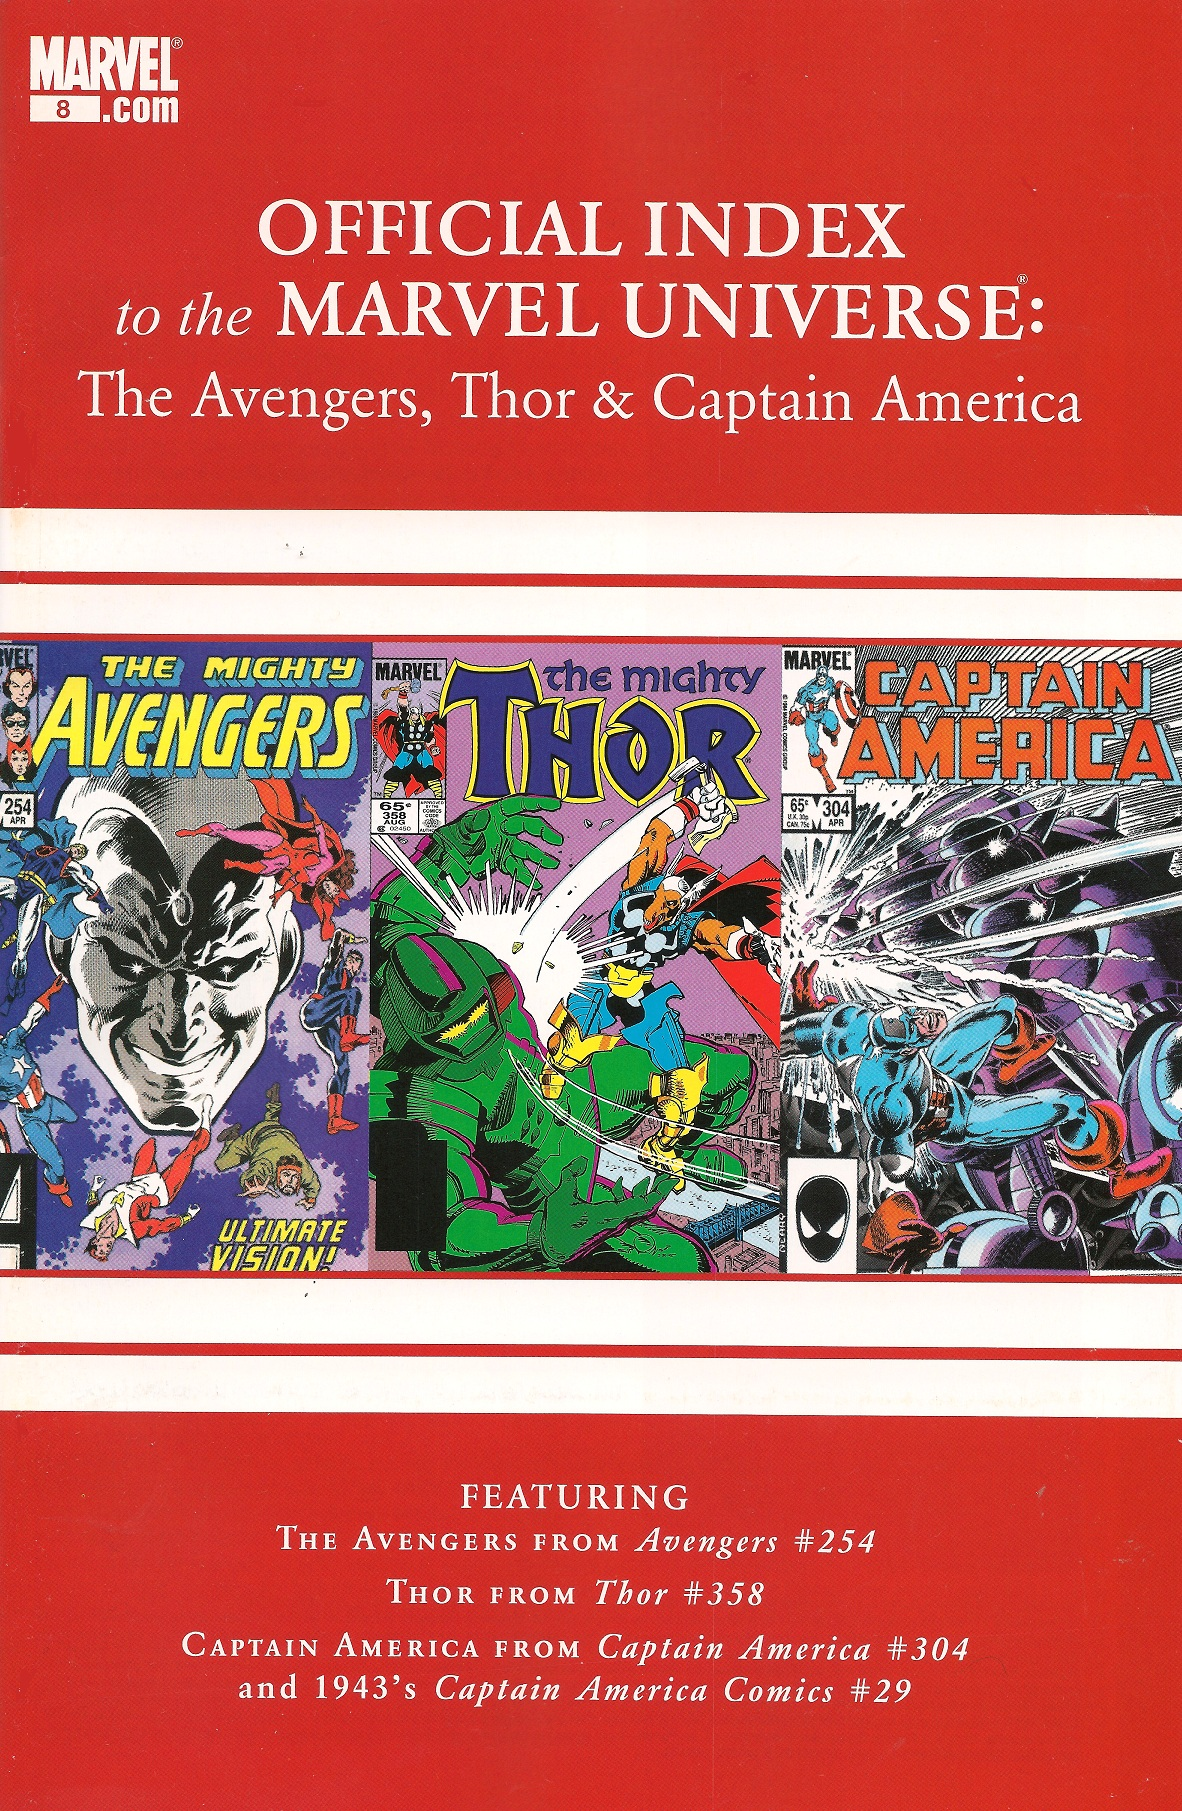 Avengers, Thor & Captain America: Official Index to the Marvel Universe Vol 1 8